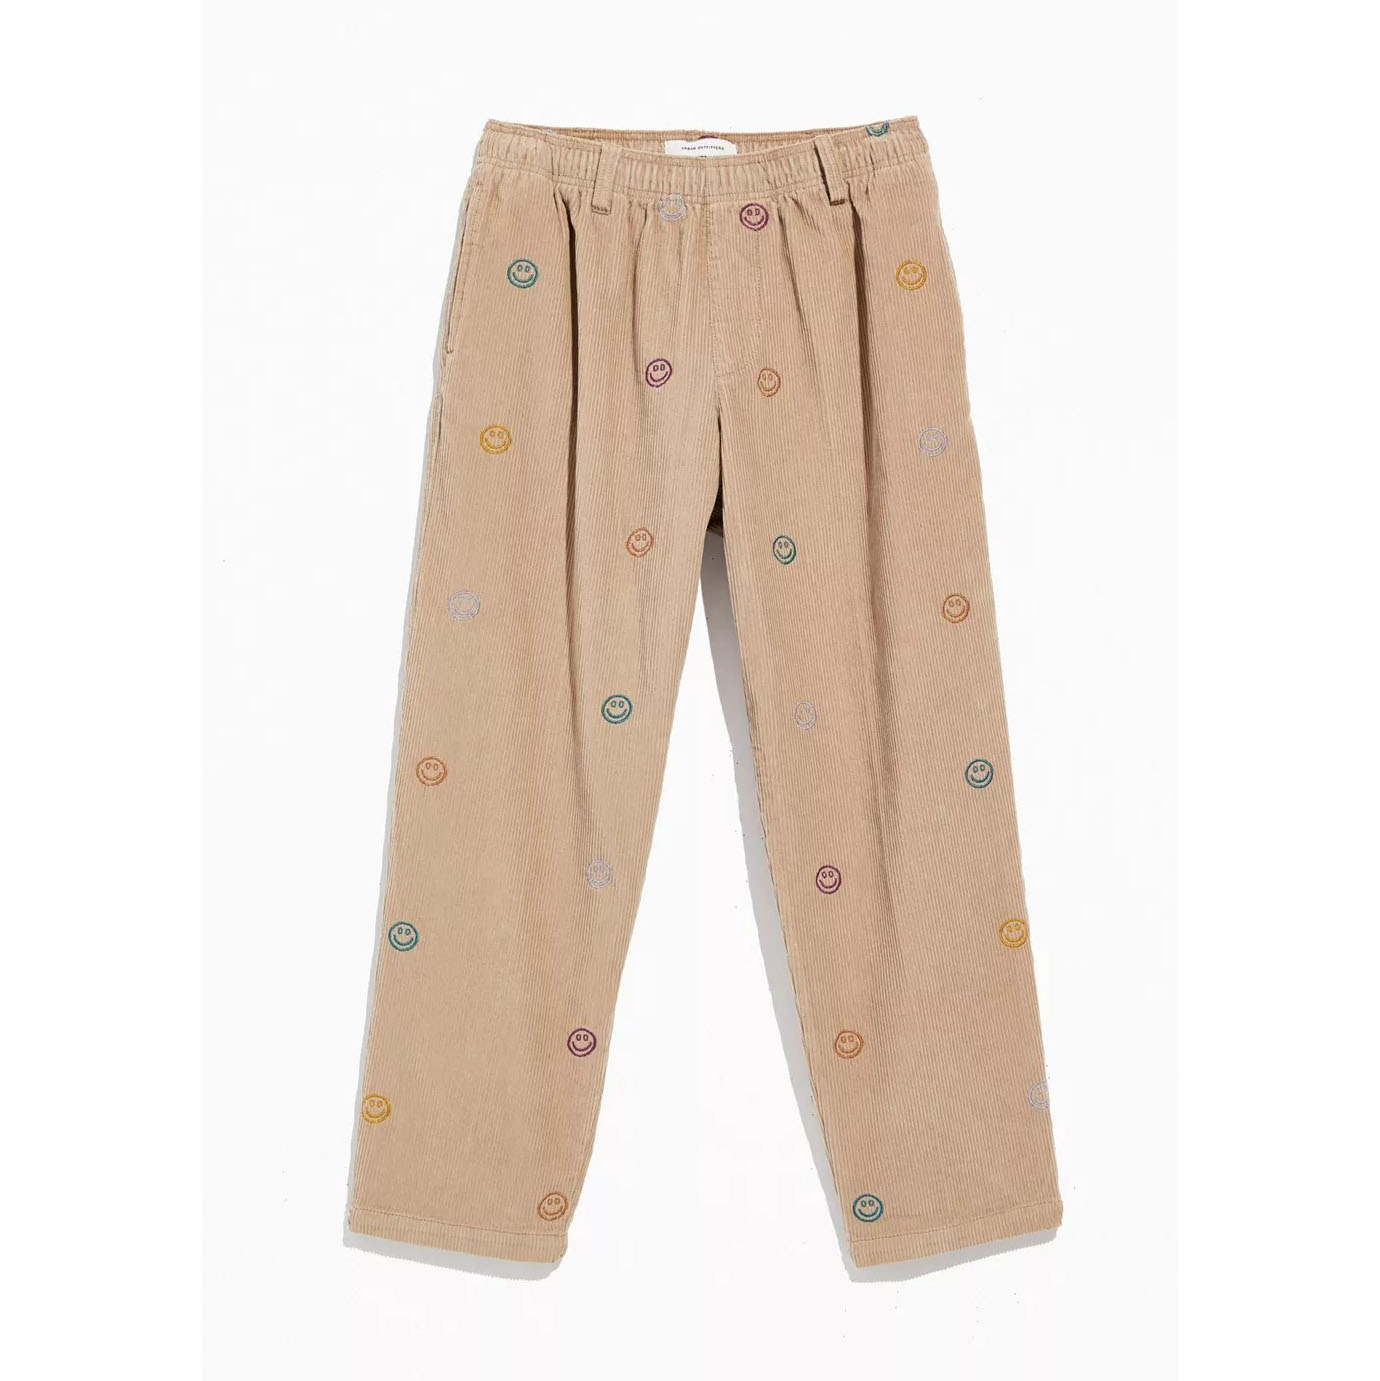 UO Embroidered Corduroy Beach Pant